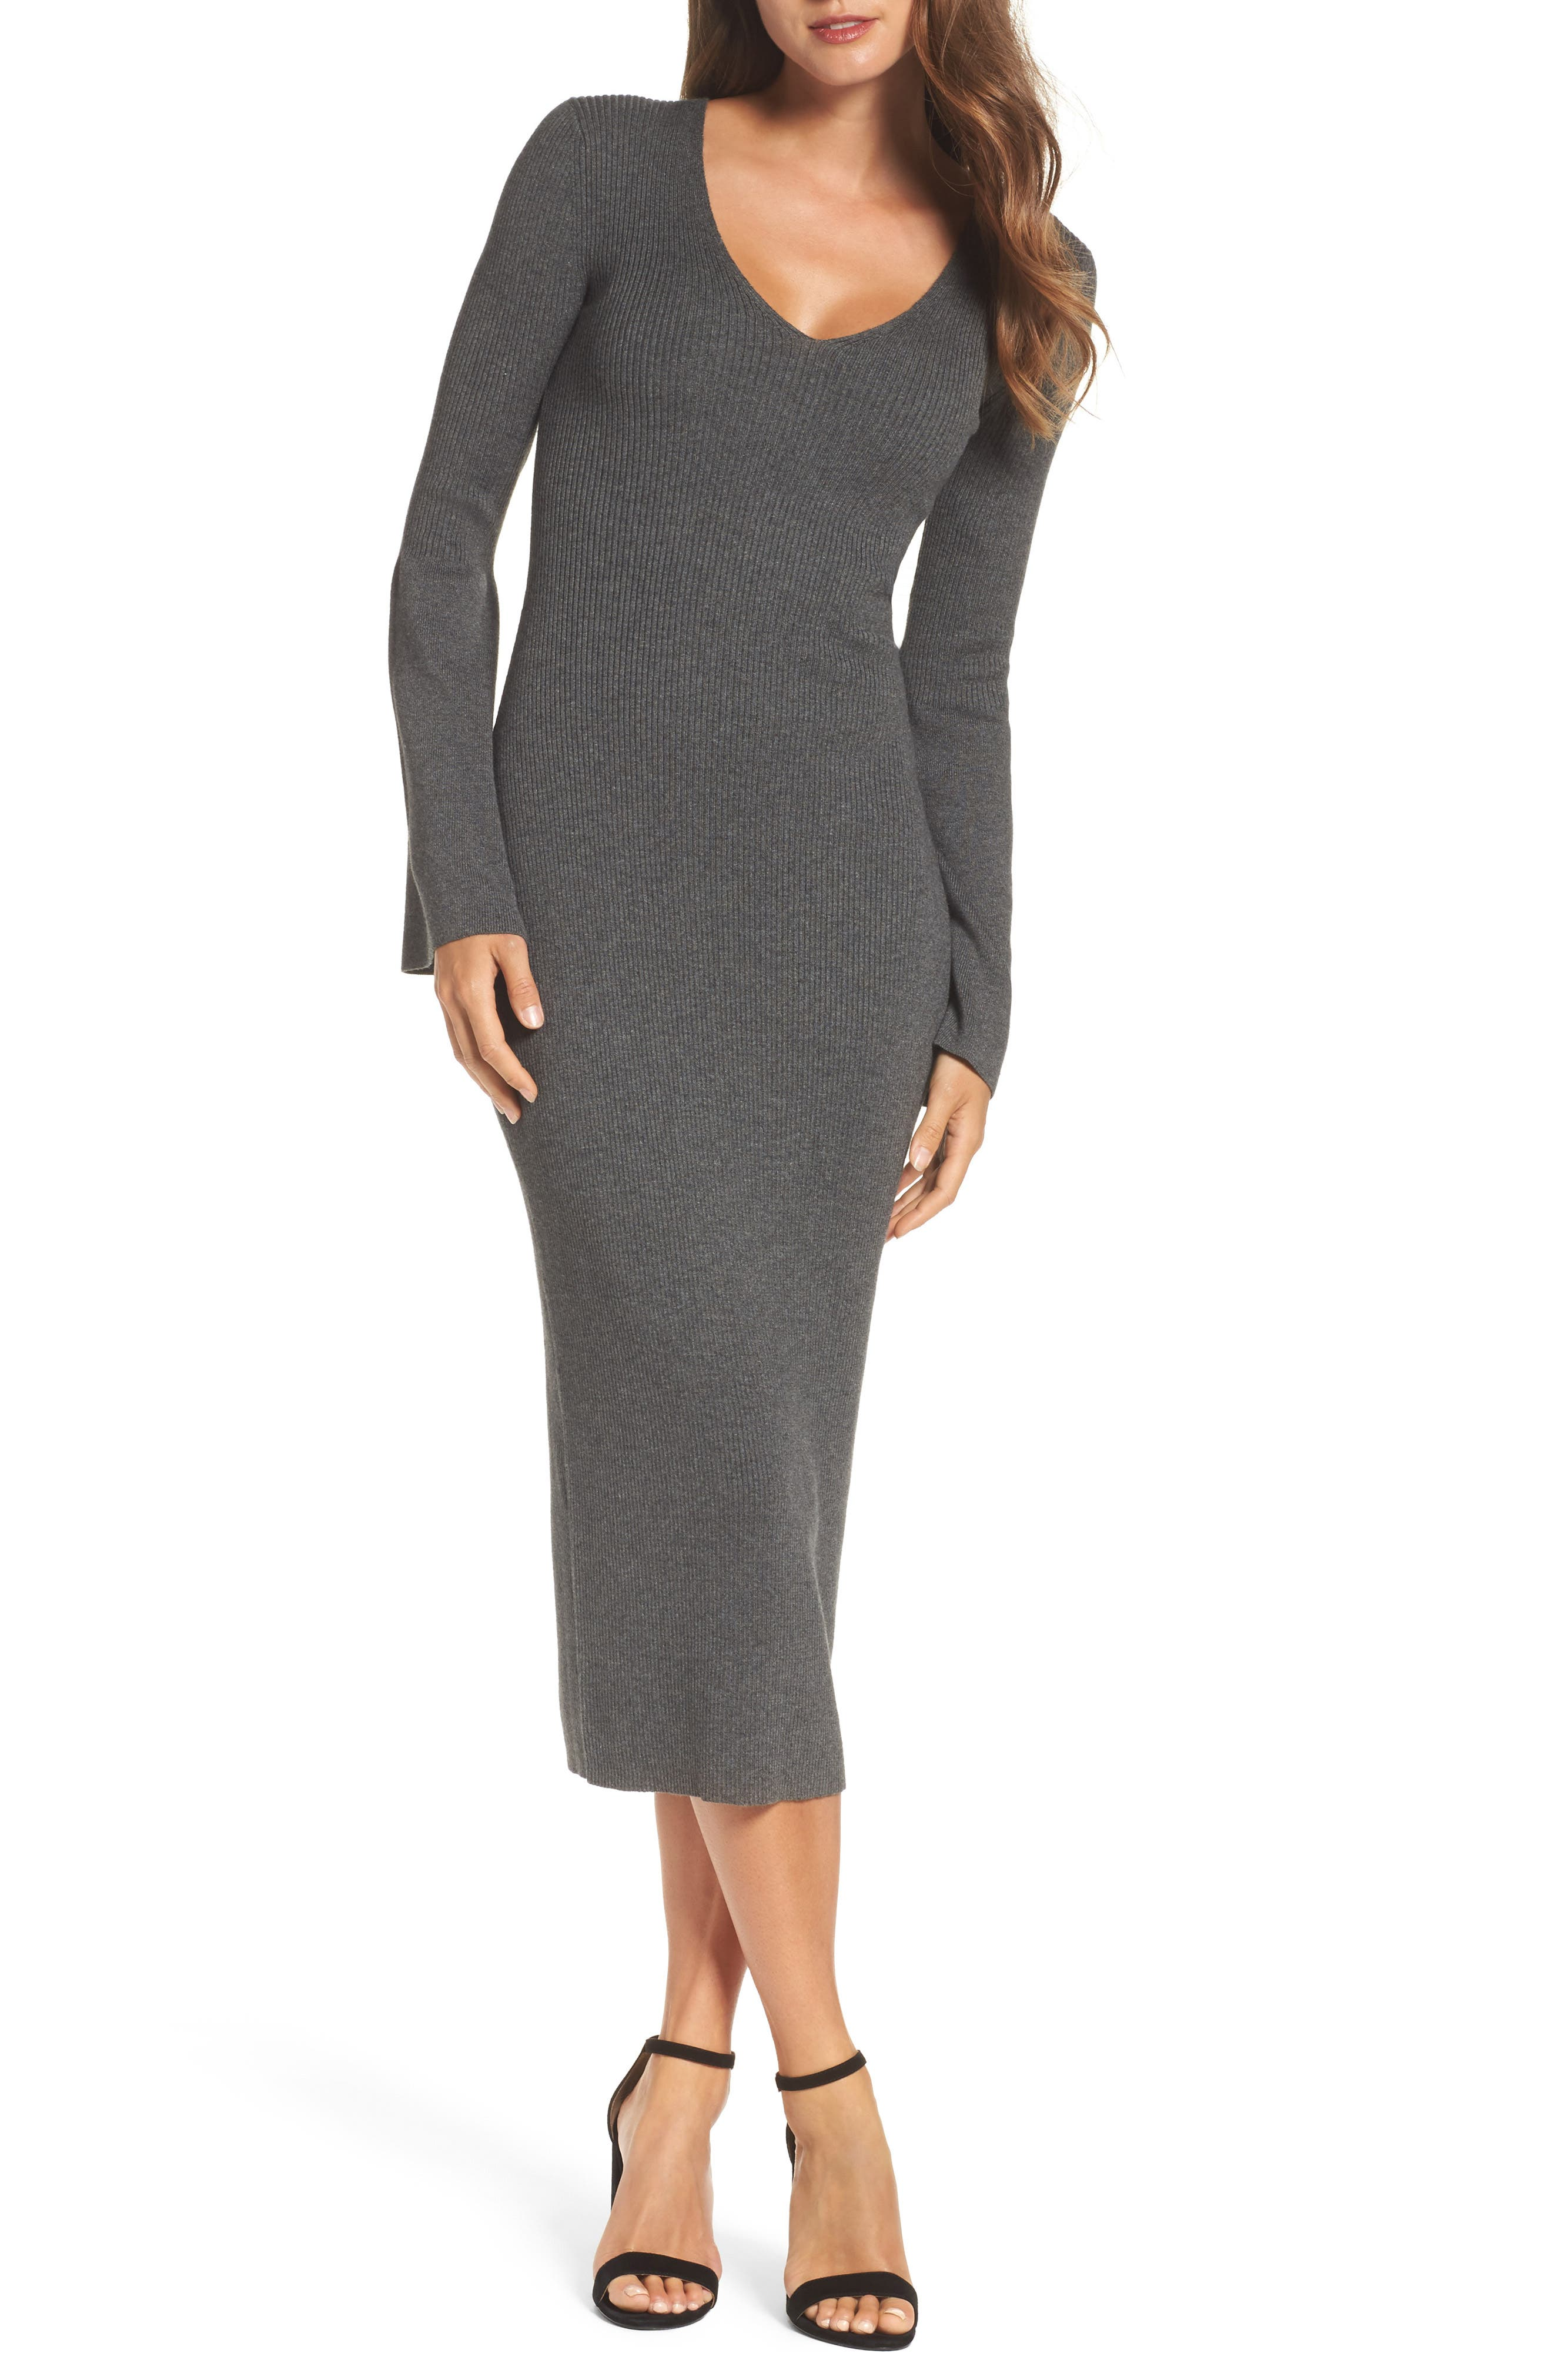 Virgie Knits Midi Dress,                         Main,                         color, Charcoal